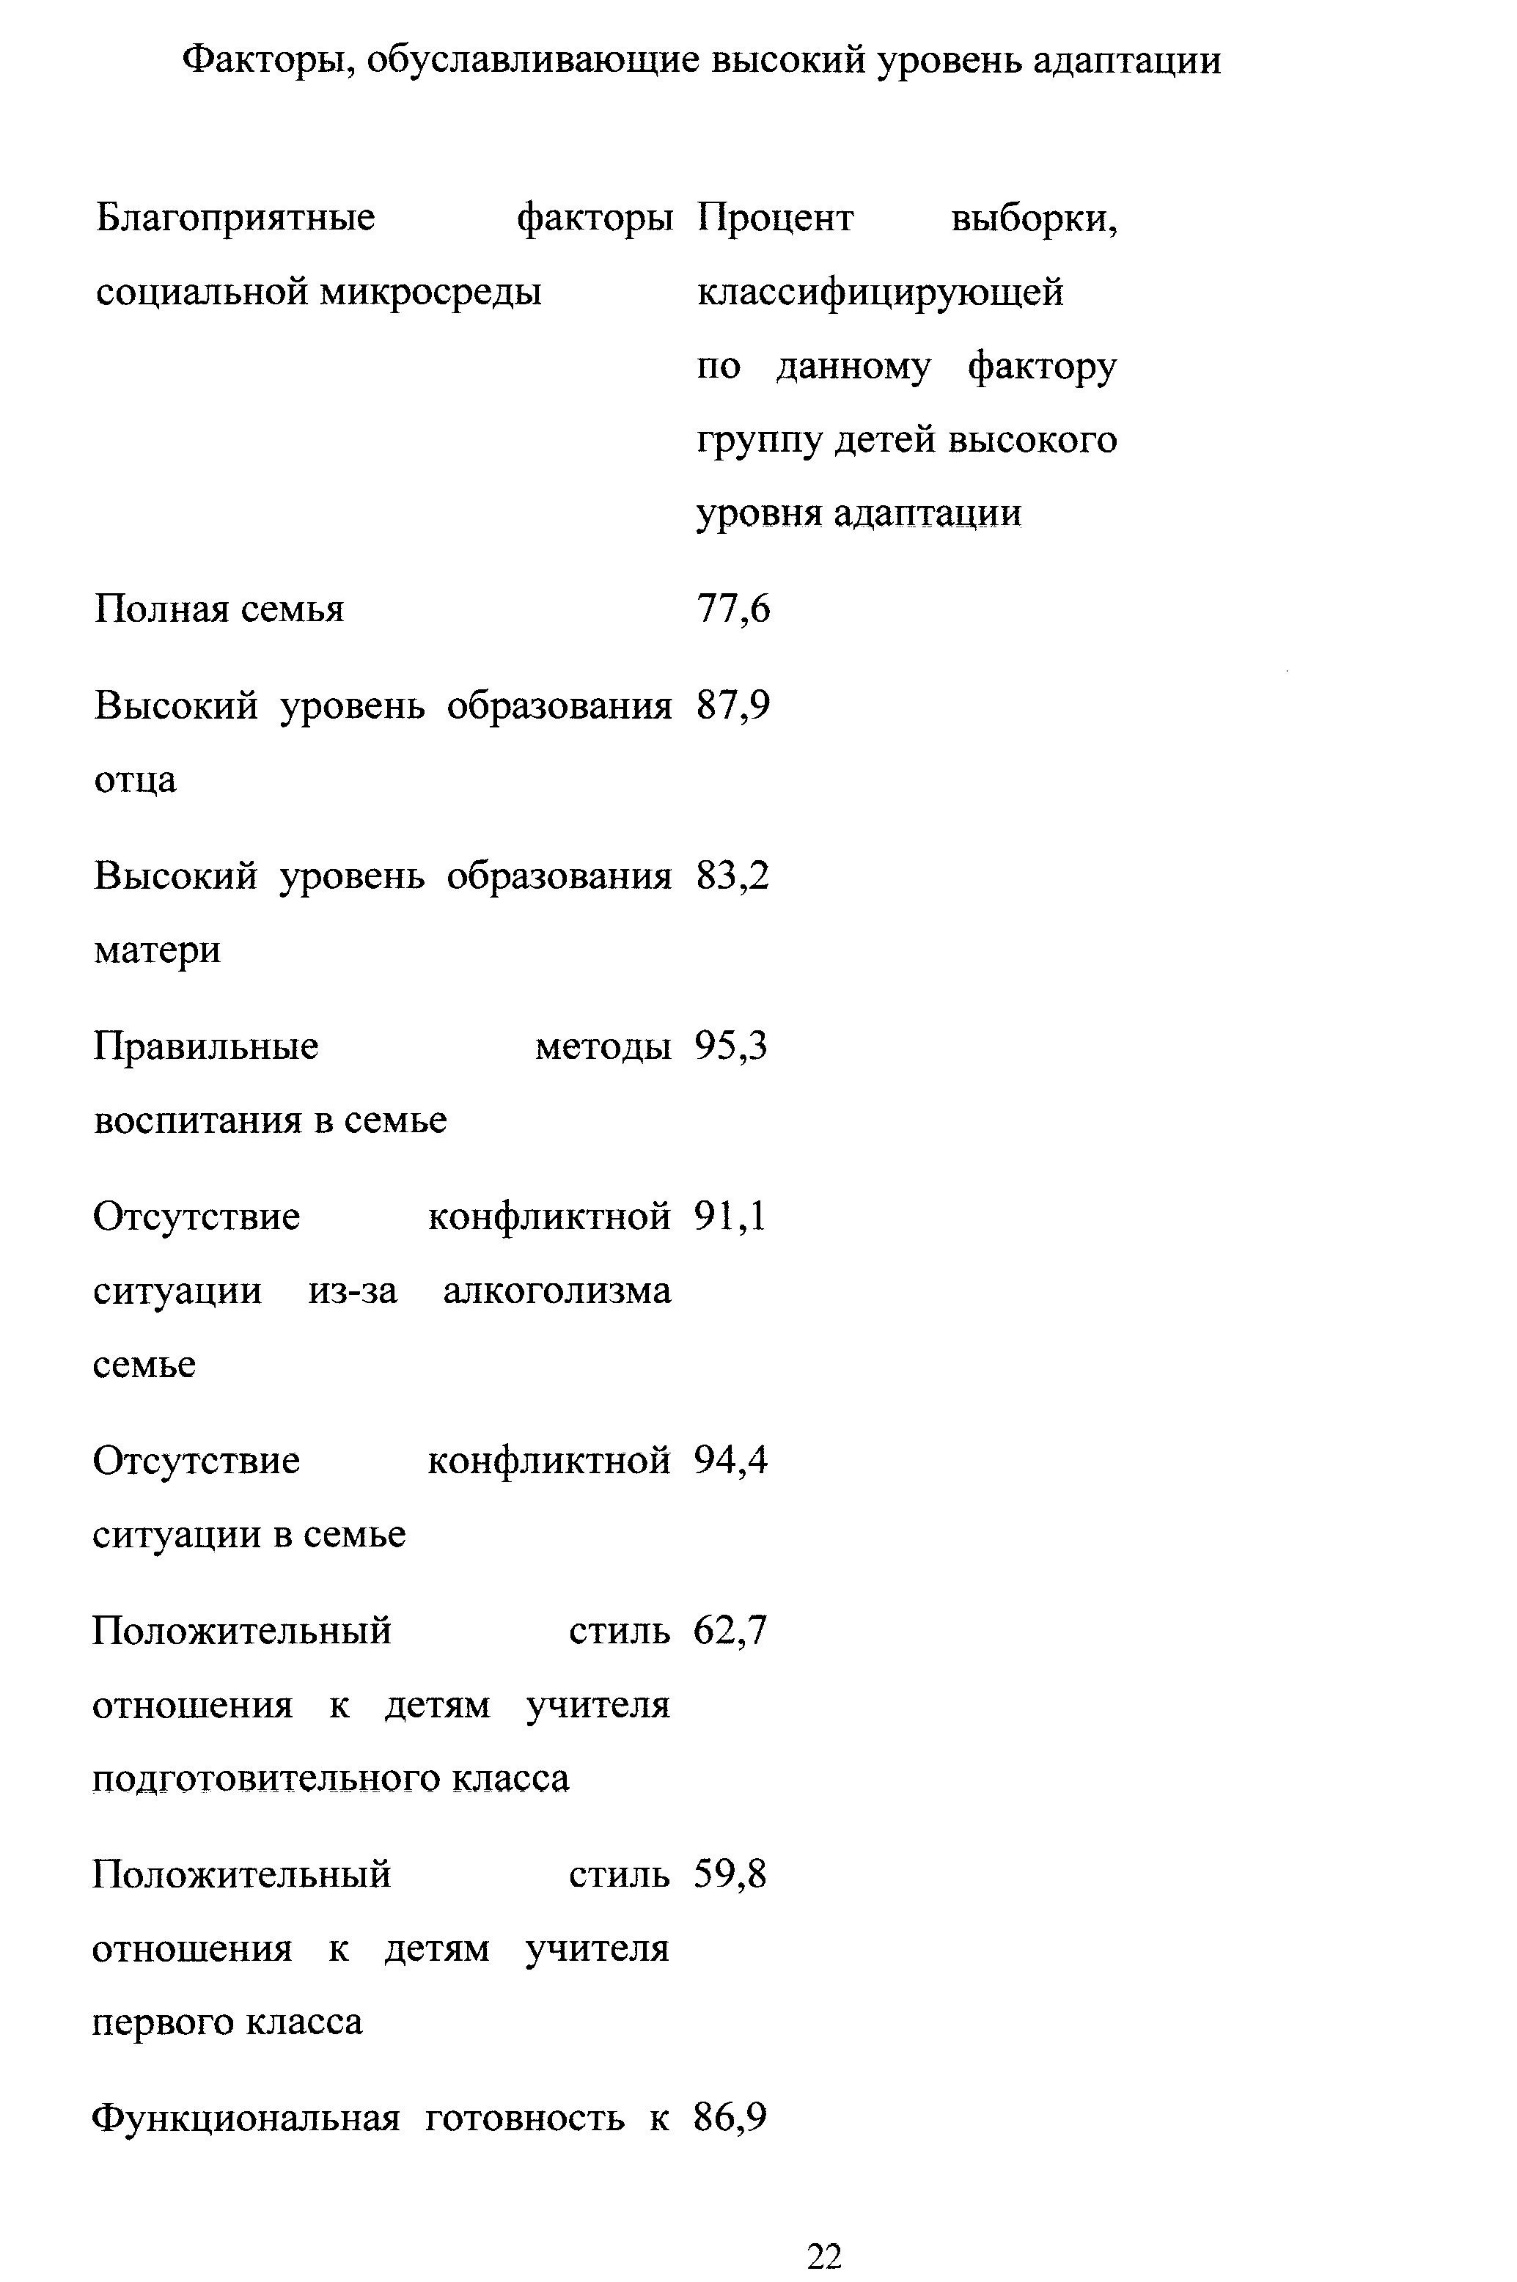 C:\Users\ЛАРИСА\Documents\Scanned Documents\Рисунок (126).jpg